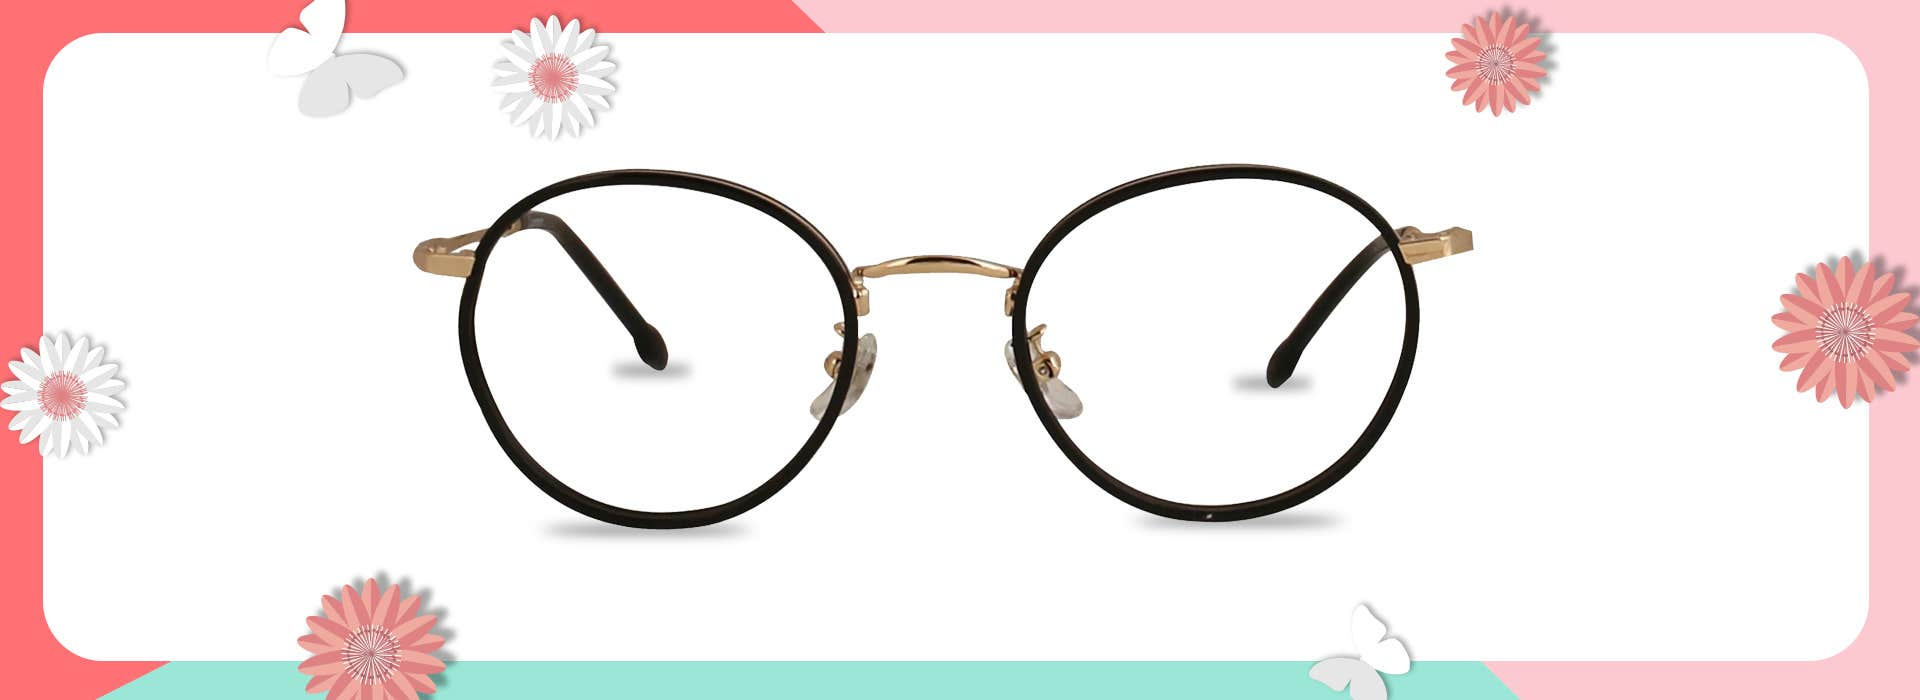 The 128505-C EYEGLASSES: